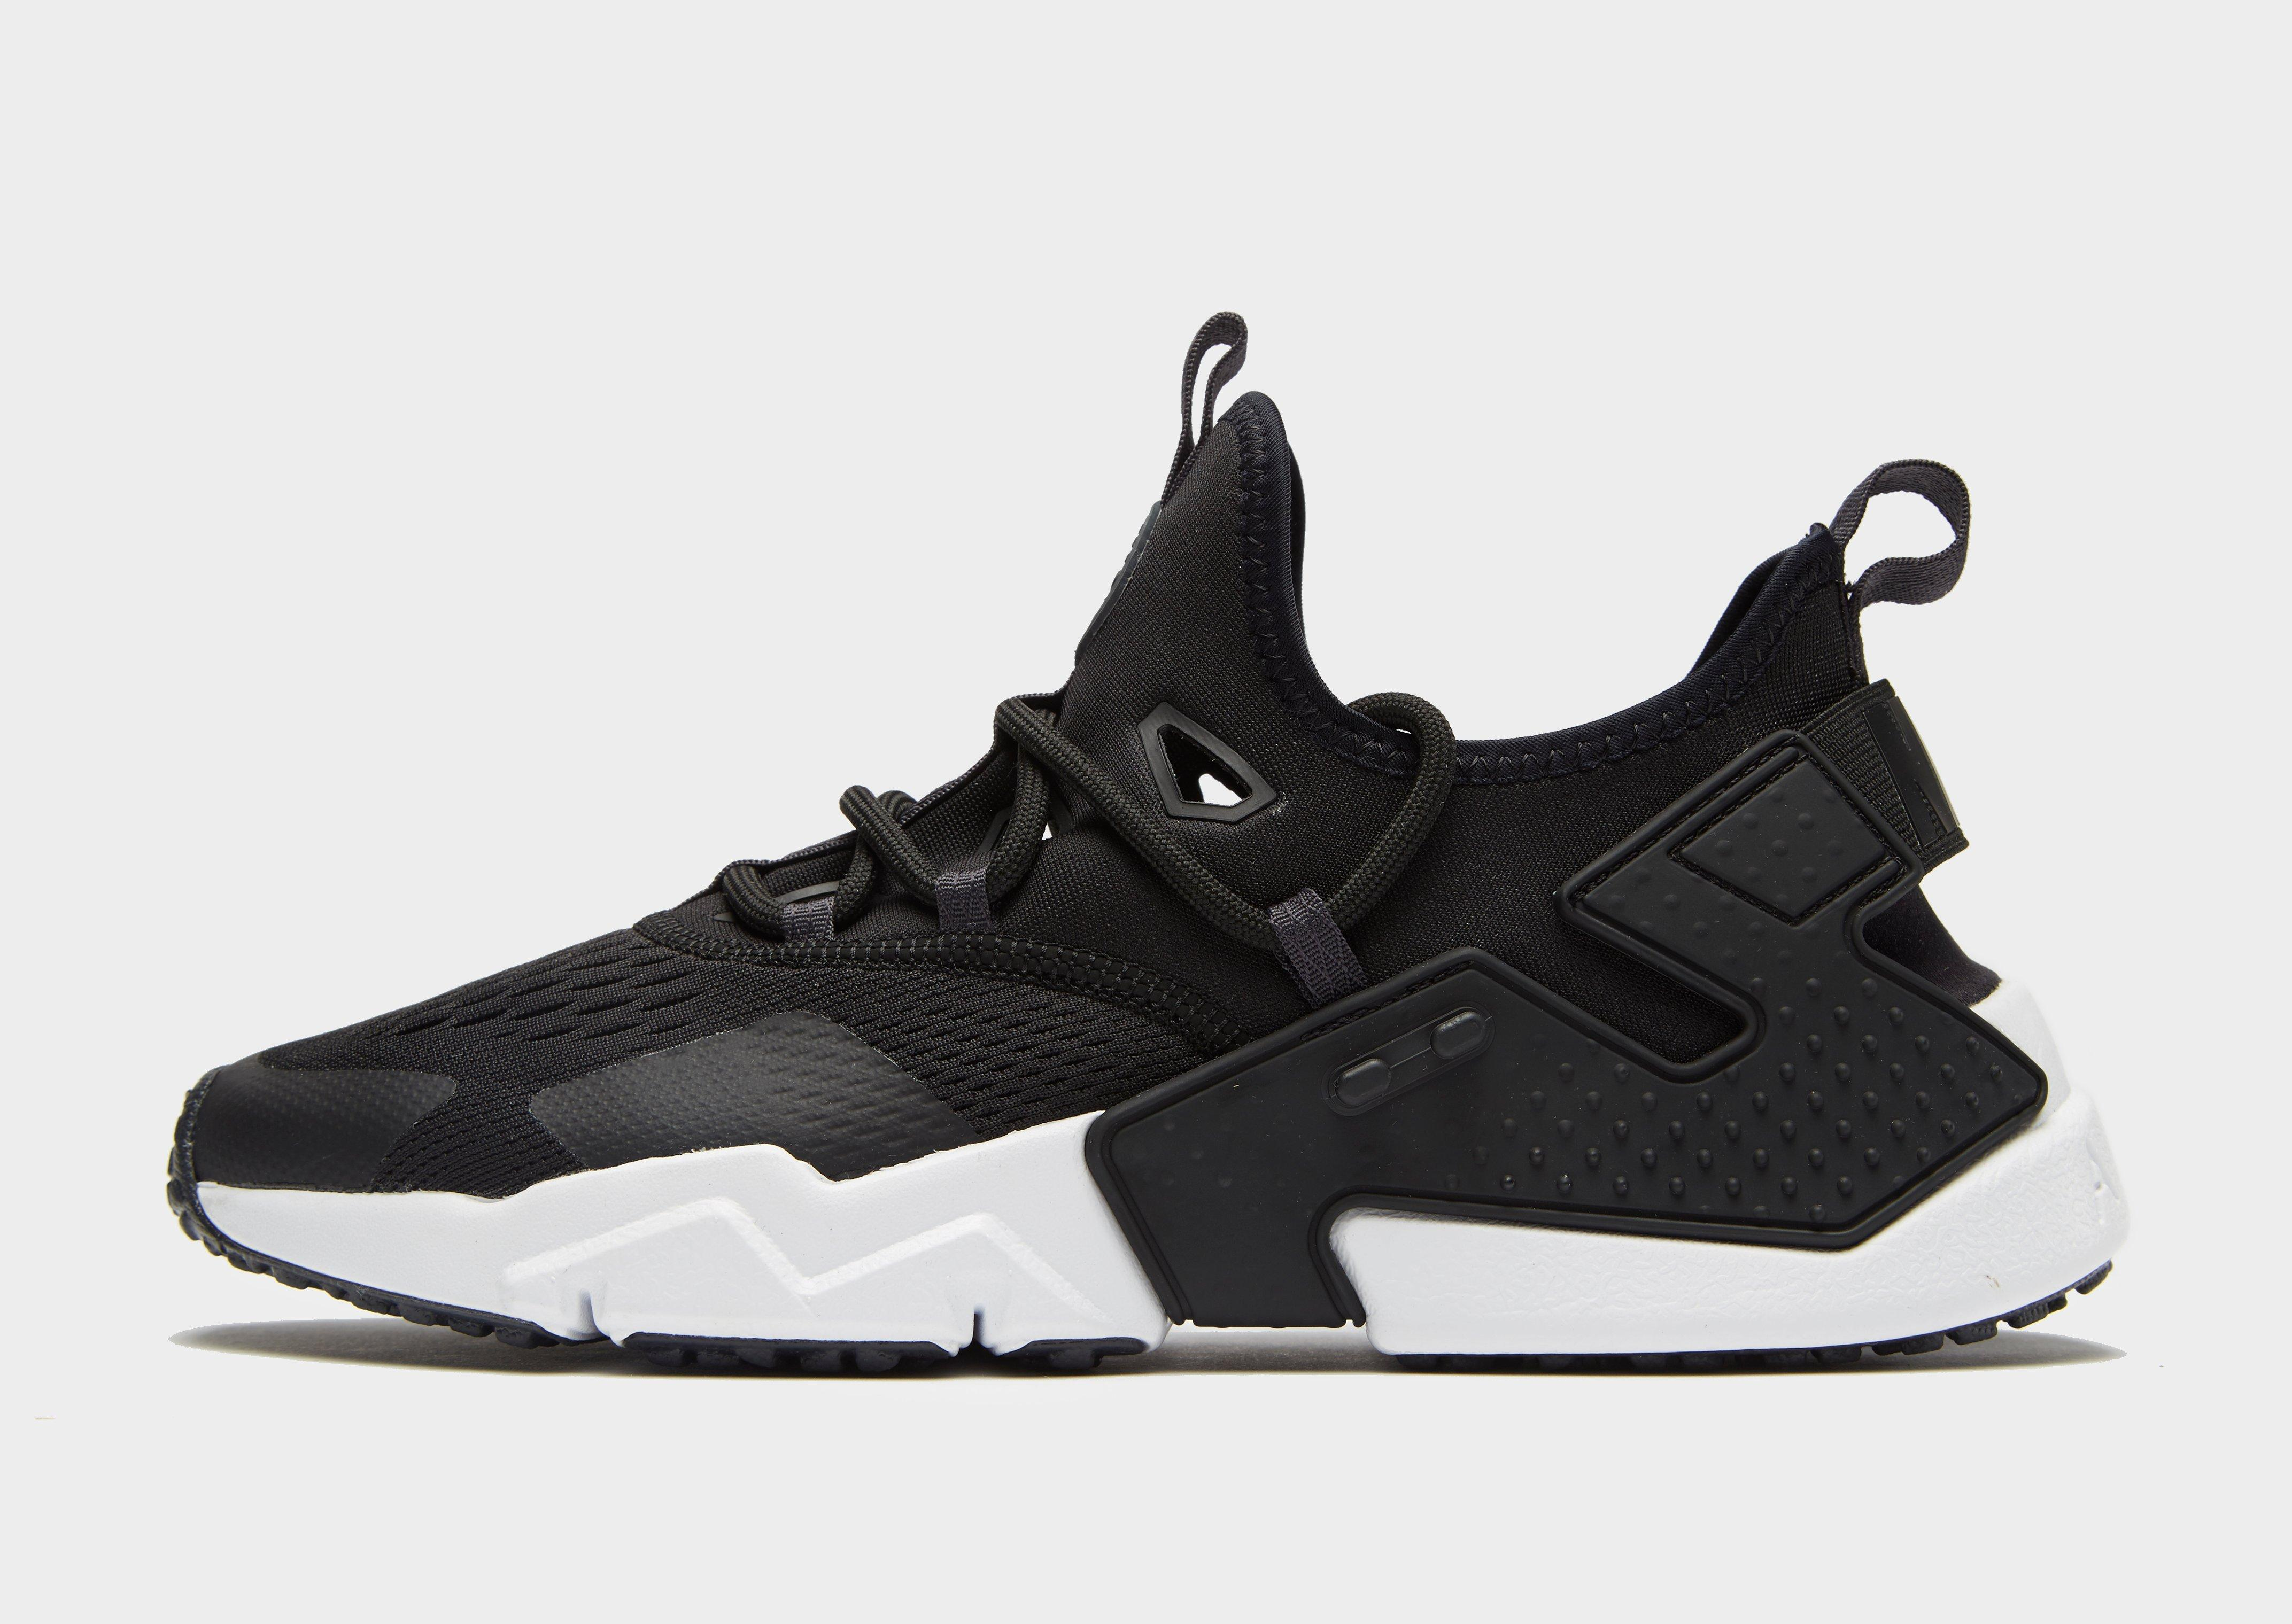 d464dc71b Gallery. Previously sold at: JD Sports · Men's Nike Huarache